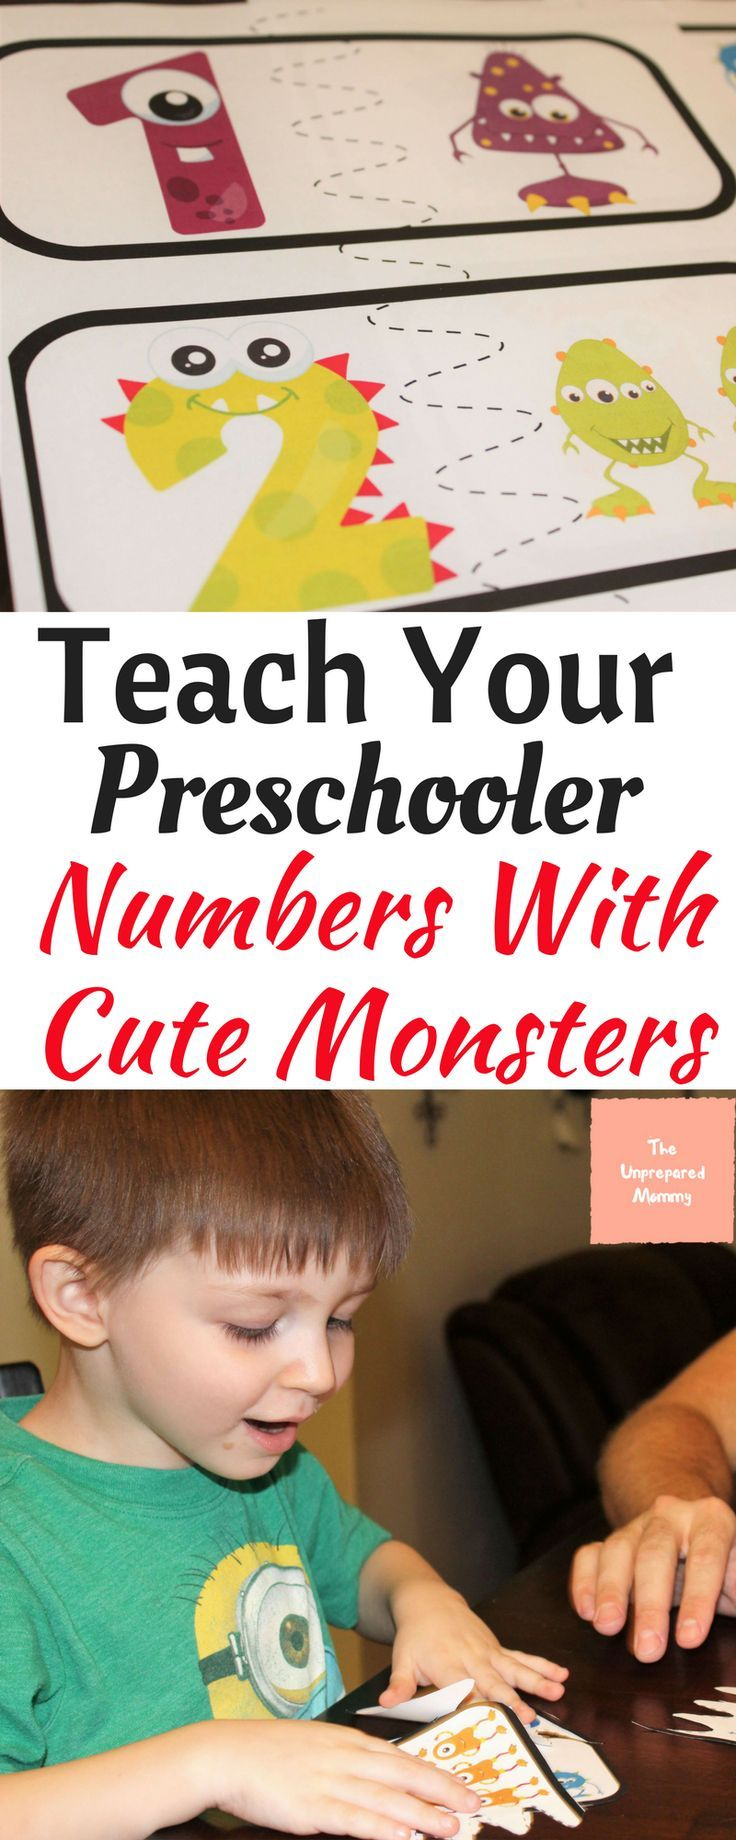 How To Teach Your Preschooler Numbers with